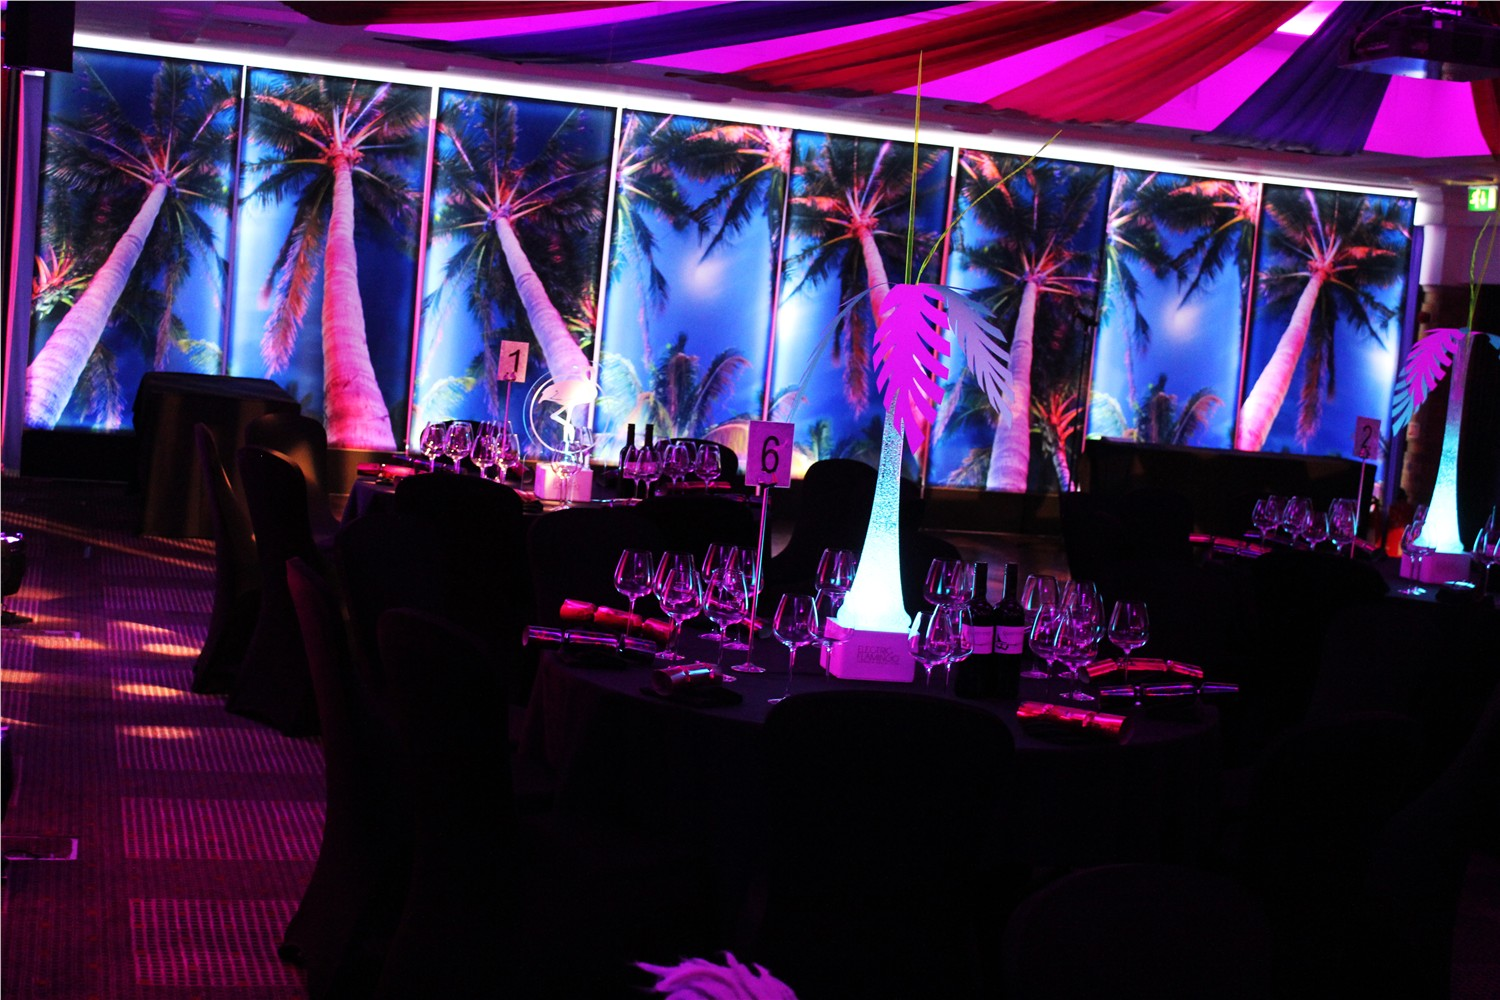 LED pine tree table centres and Pine tree light panels